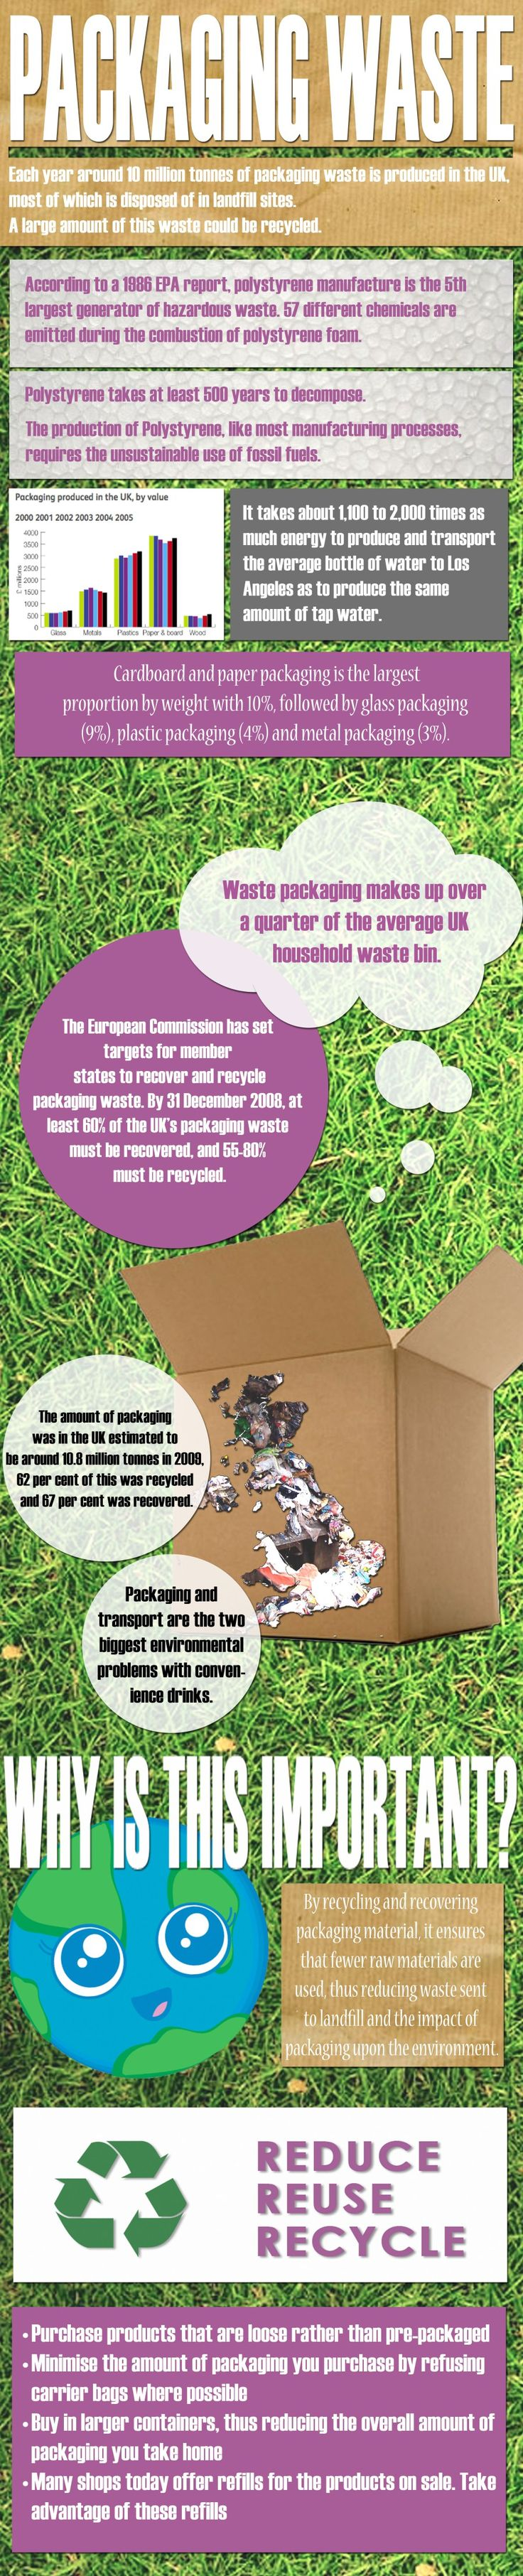 Ecoschools gt home gt resources and guides gt charts and posters - Packaging Waste Infographic